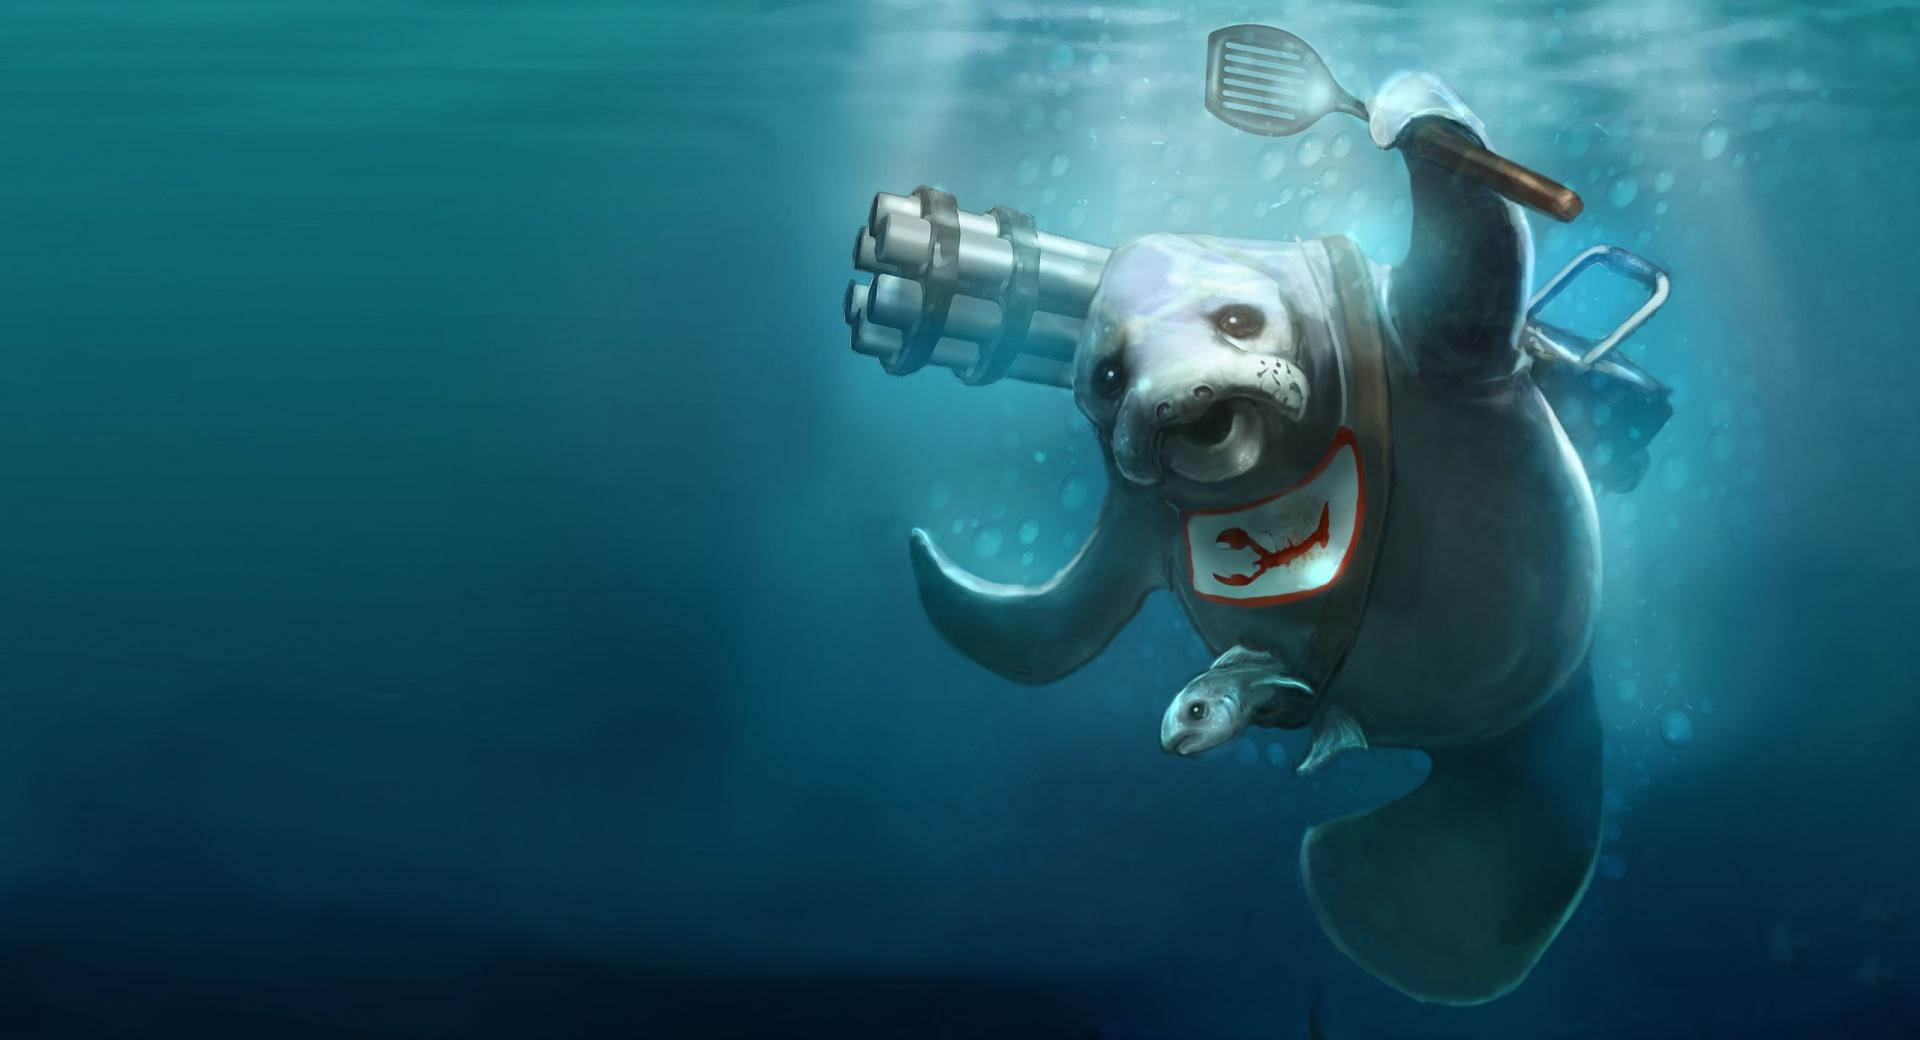 Seal Underwater Painting wallpapers HD quality